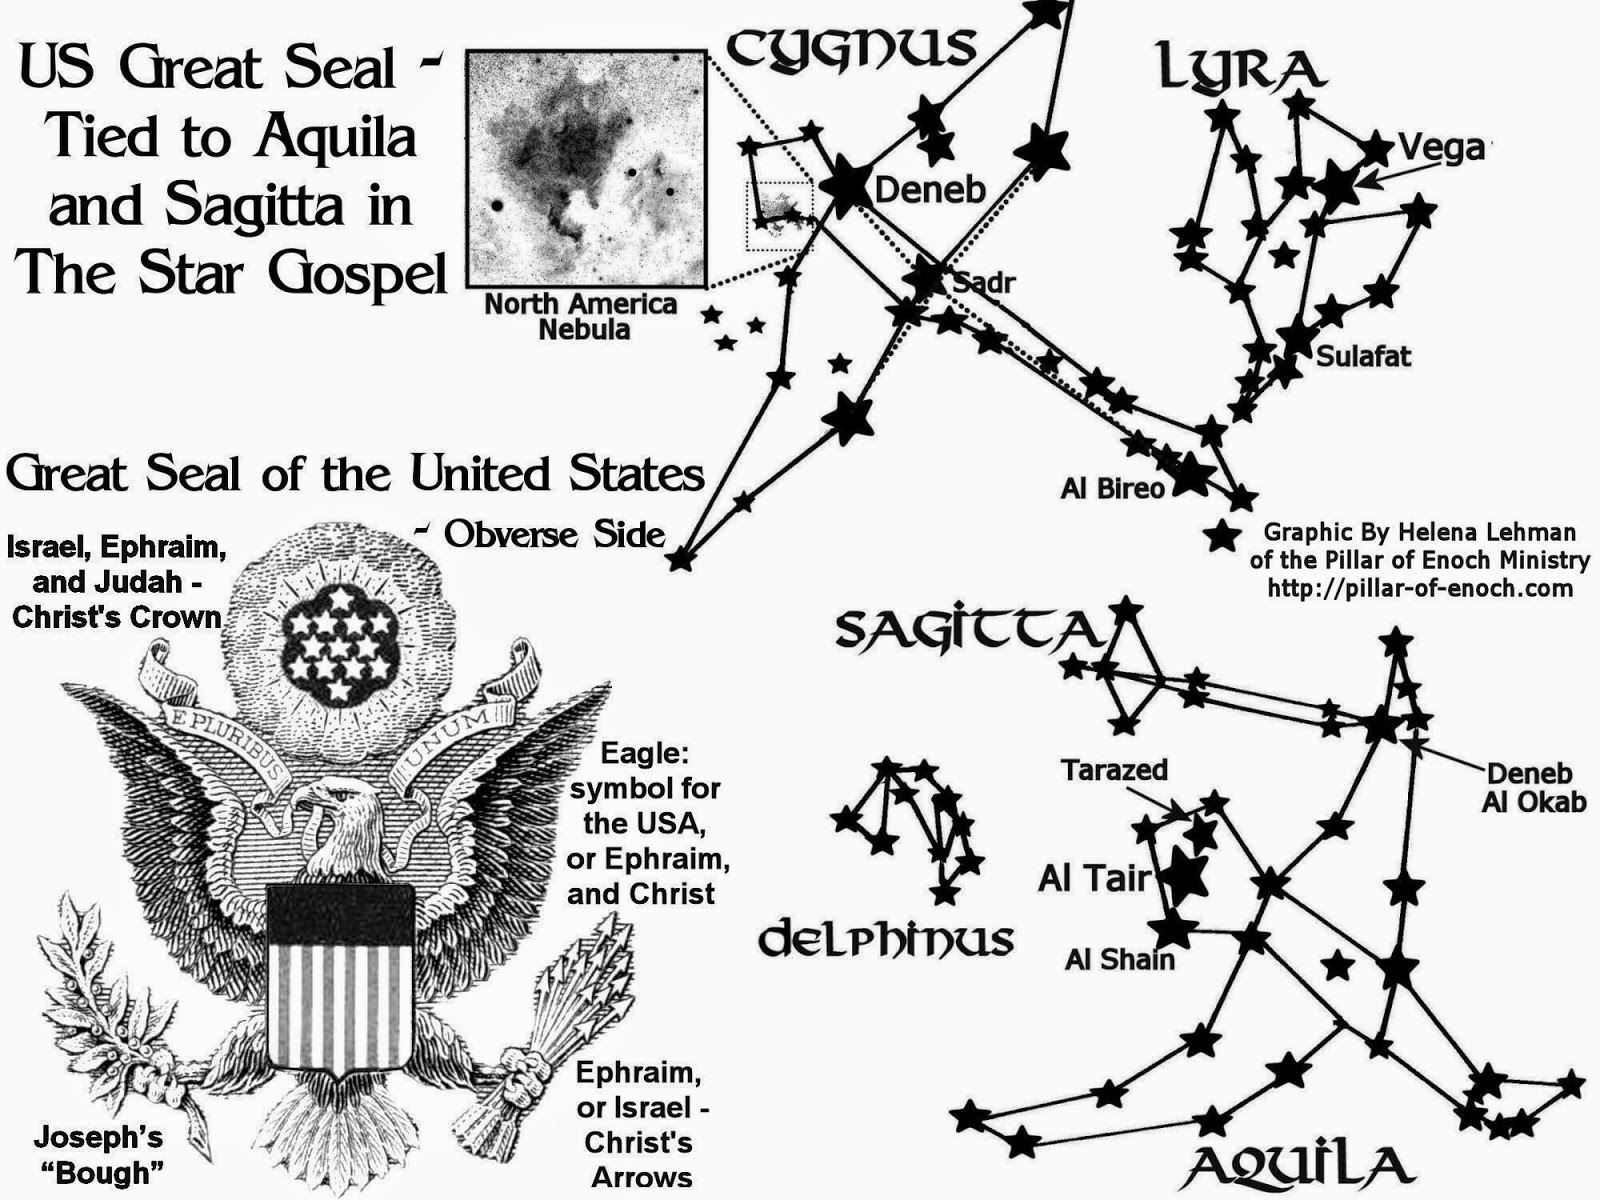 Pillar of enoch ministry blog the true meaning of the us great click image to enlarge biocorpaavc Image collections